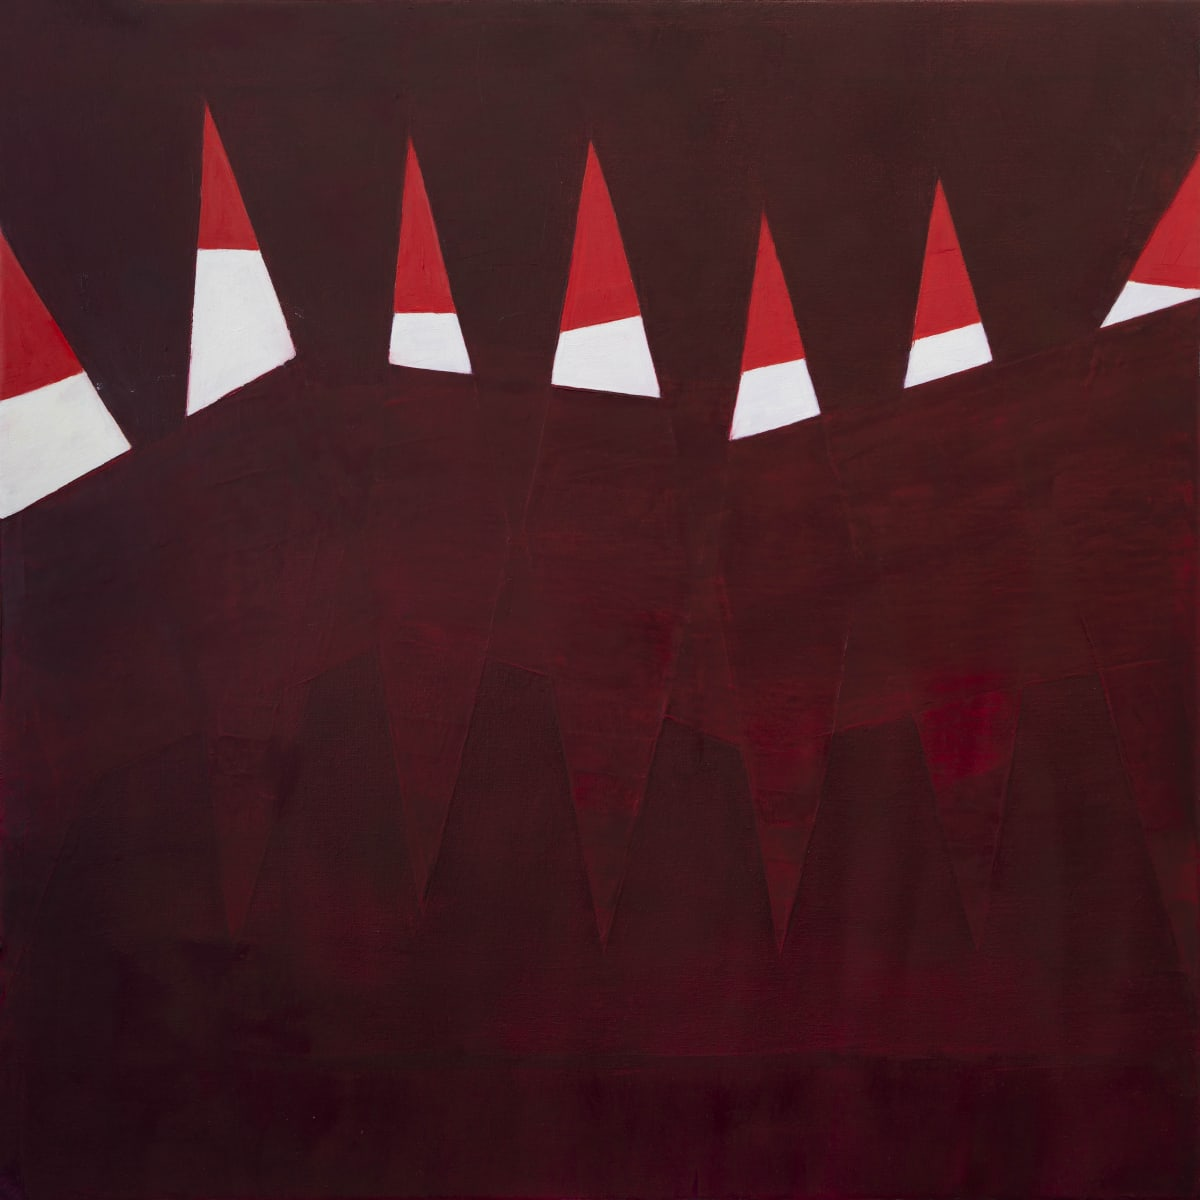 "Fran Shalom's ""Right View"" oil painting on wood in various shades of red and white. The painting appears to have differently sized triangles, ones that are bright on the top while the bottom triangles are part of the darker background."